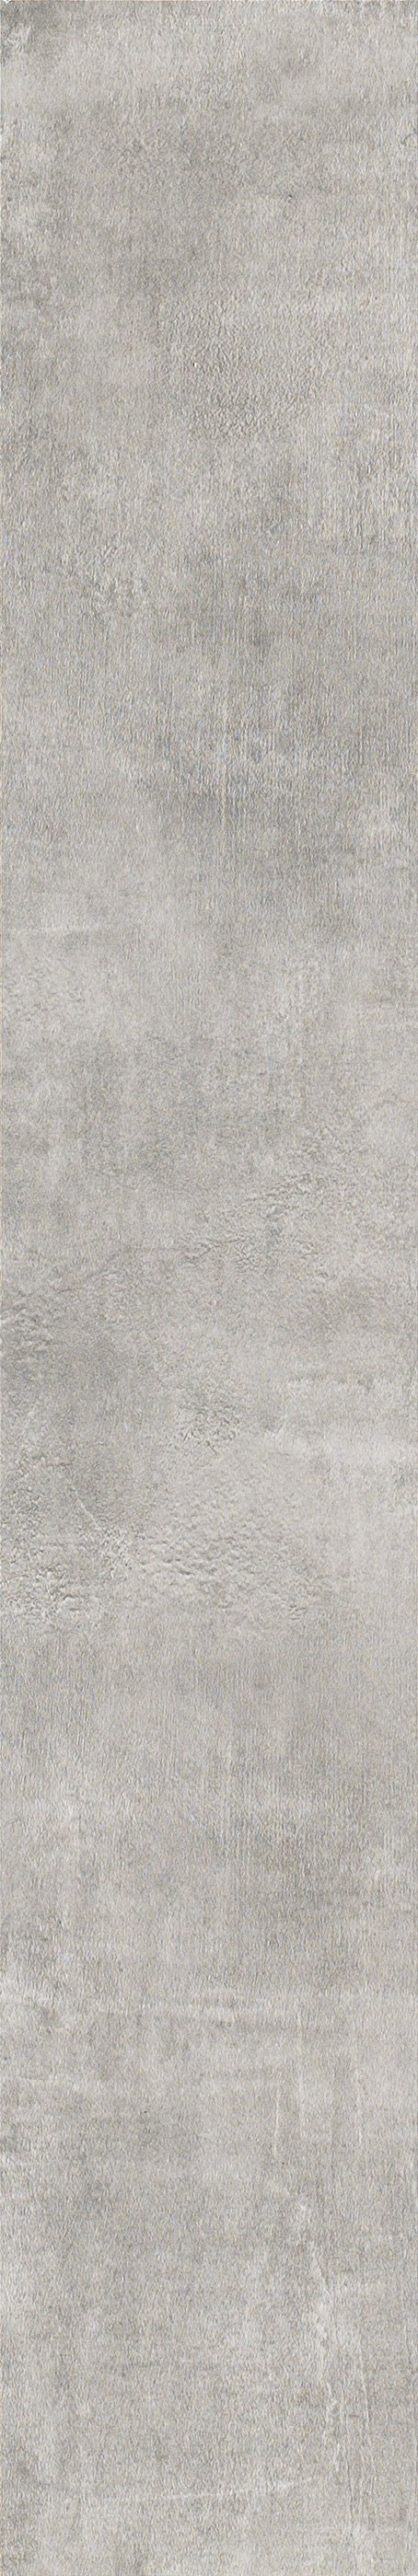 Icon Dove Gray Cement Look Tile